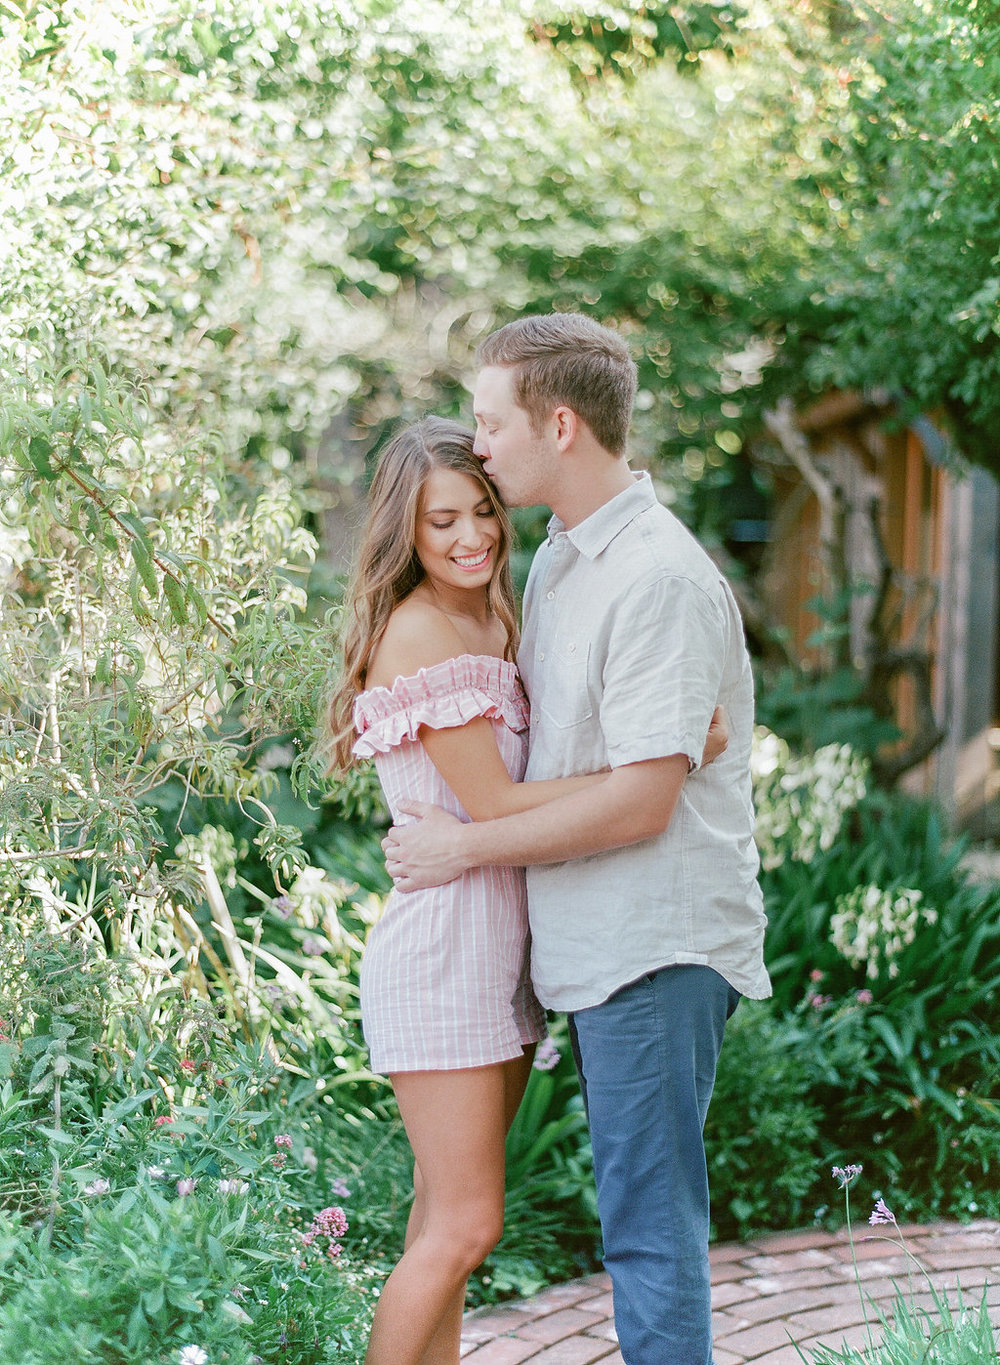 Summer Engagement Session now on Cottage Hill | cottagehill.co23.jpg